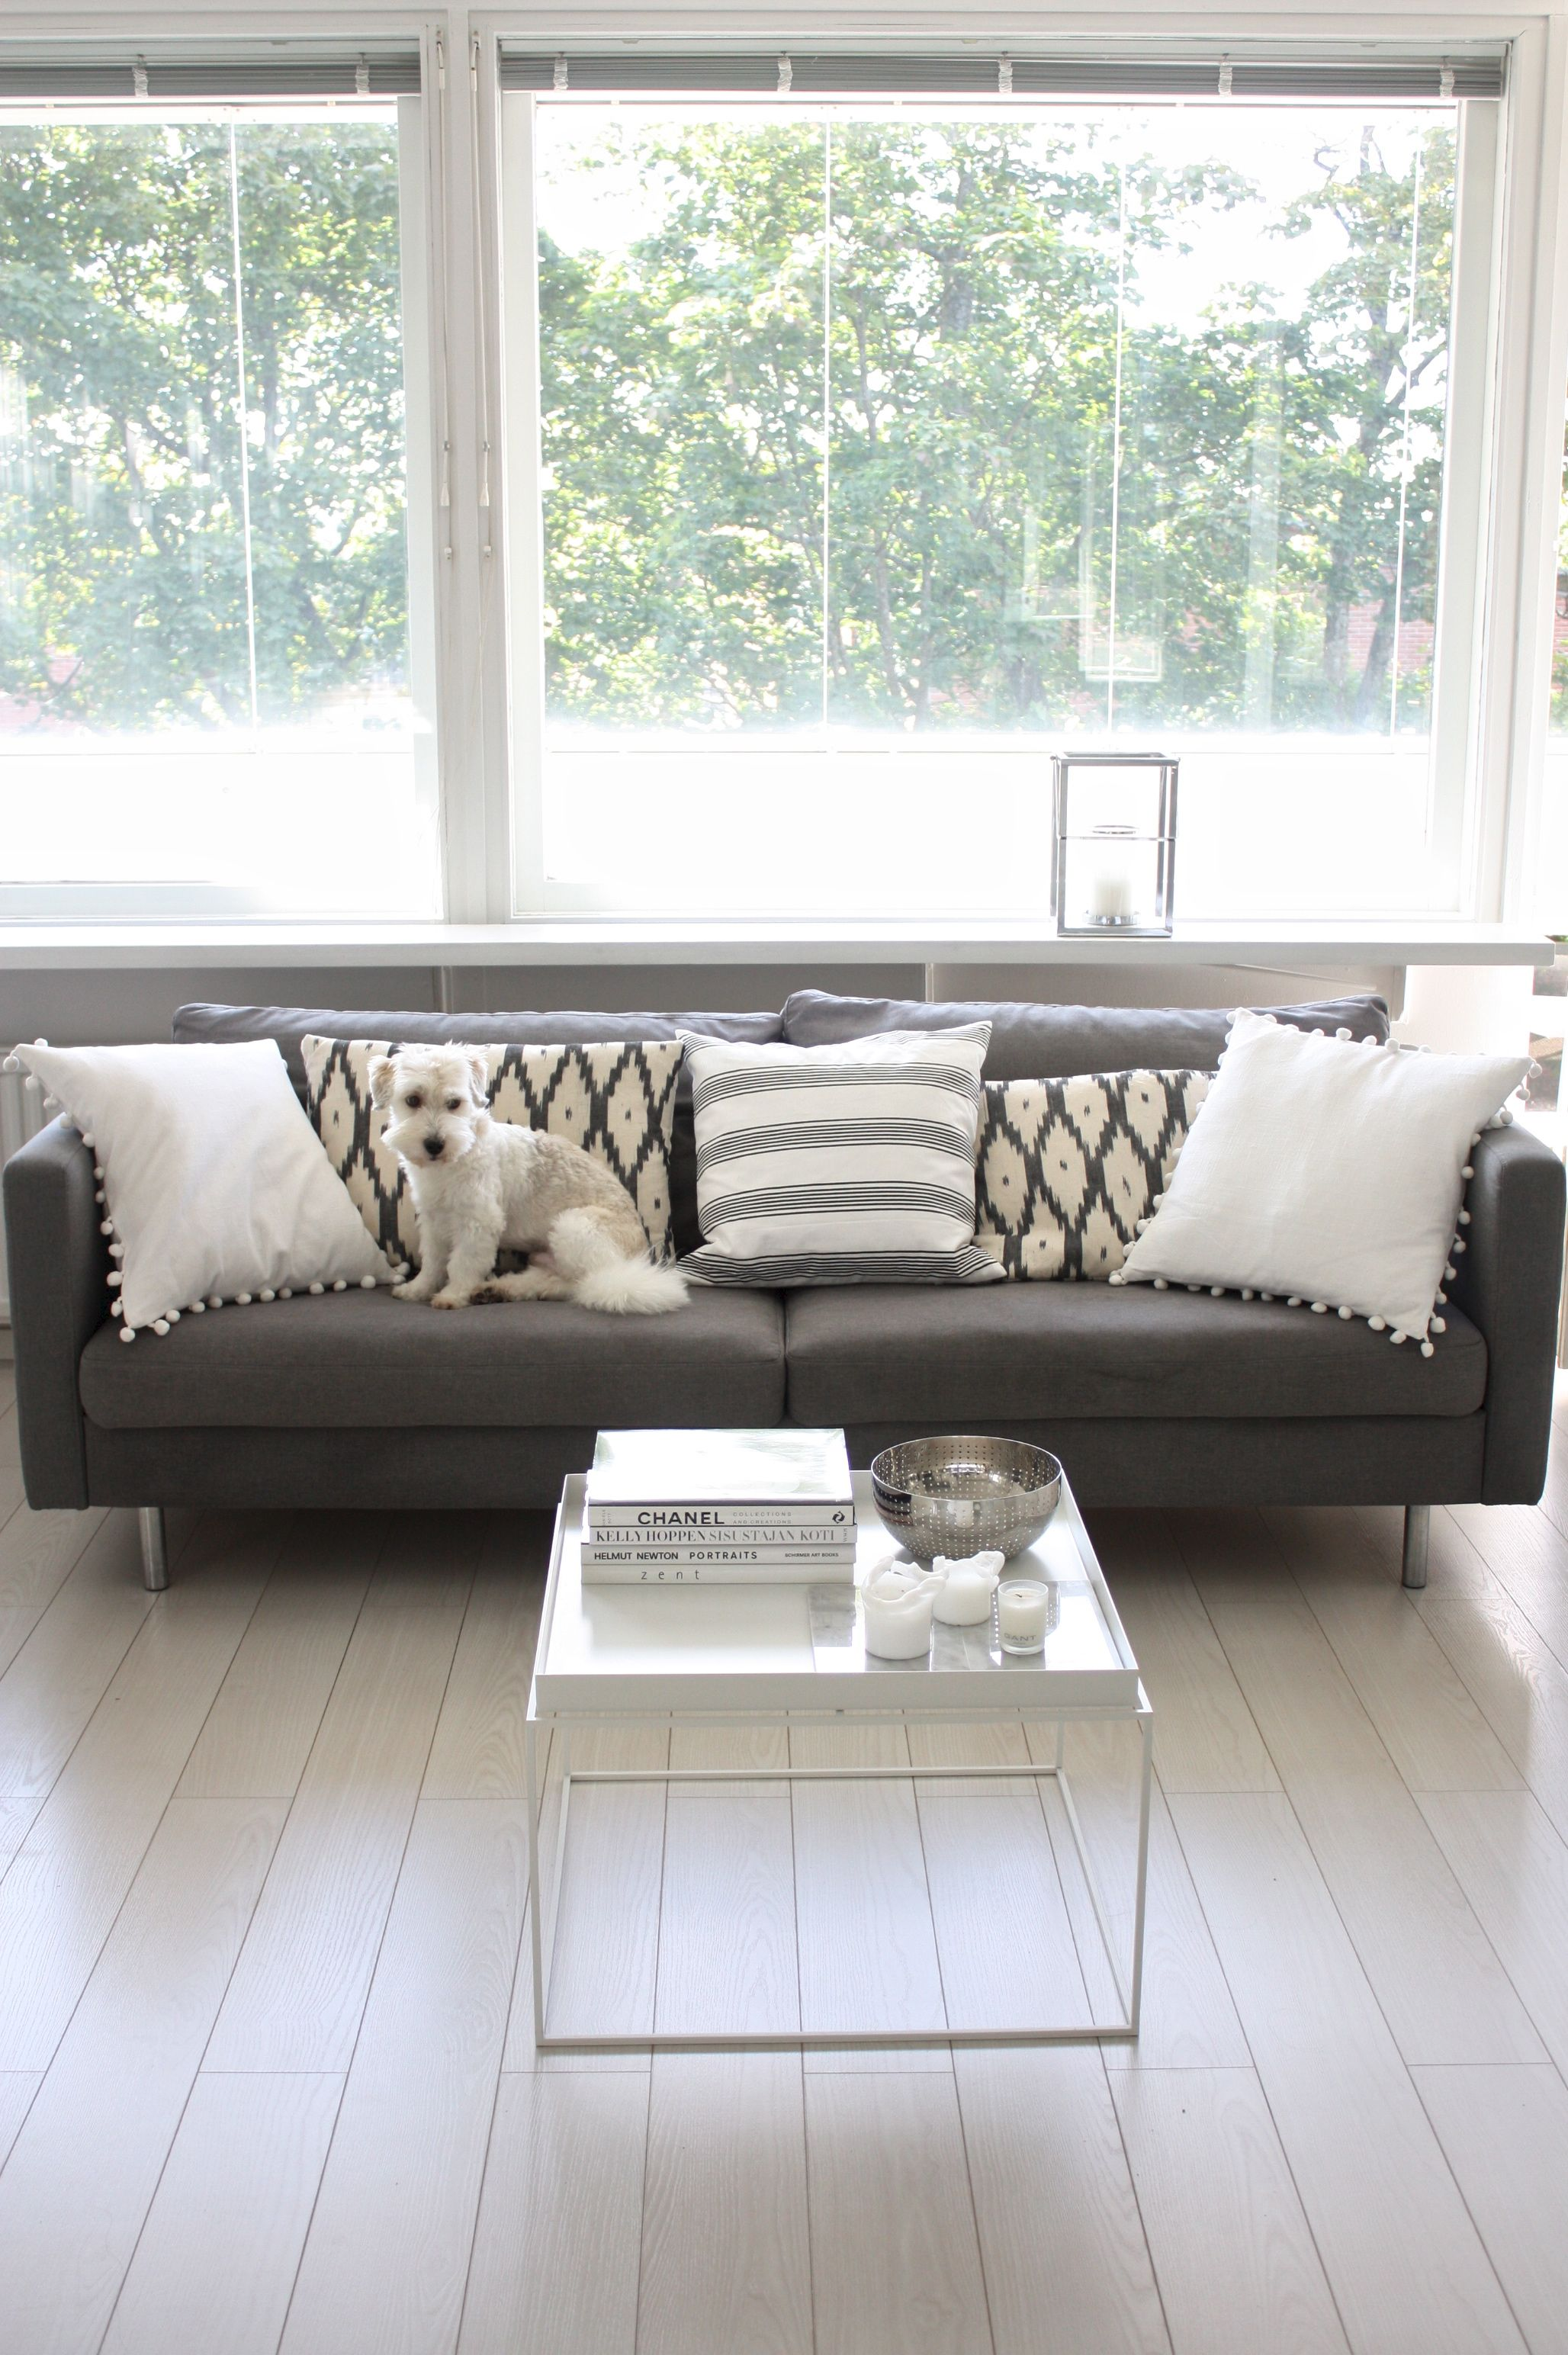 homevialaura | living room | grey sofa | Gauhar Ikat cushion | Hay Tray Table | coton de tulear dog